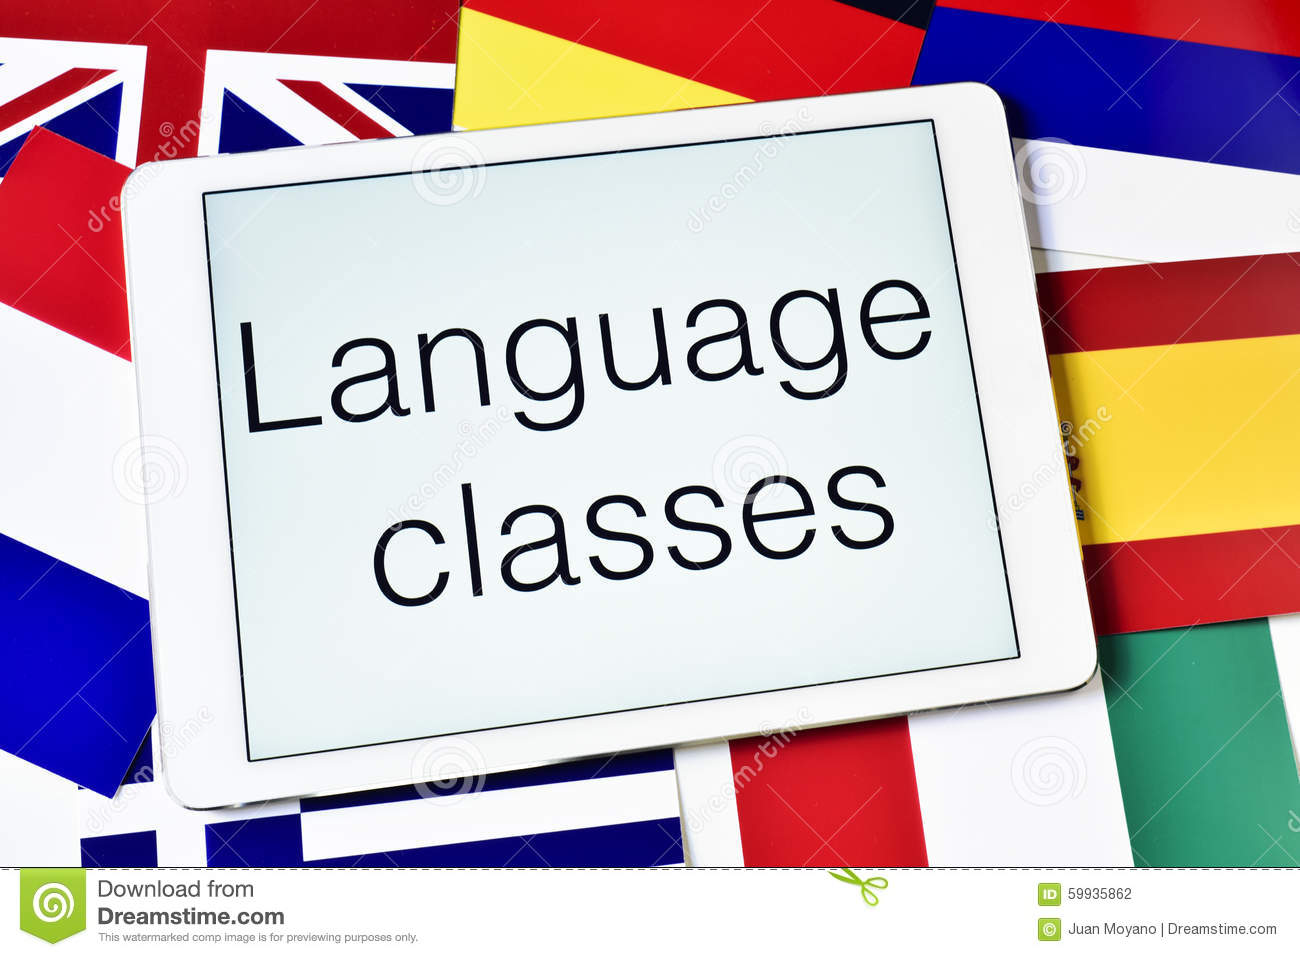 Mongolian Language Classes in Delhi | Mongolian Language Course in Delhi